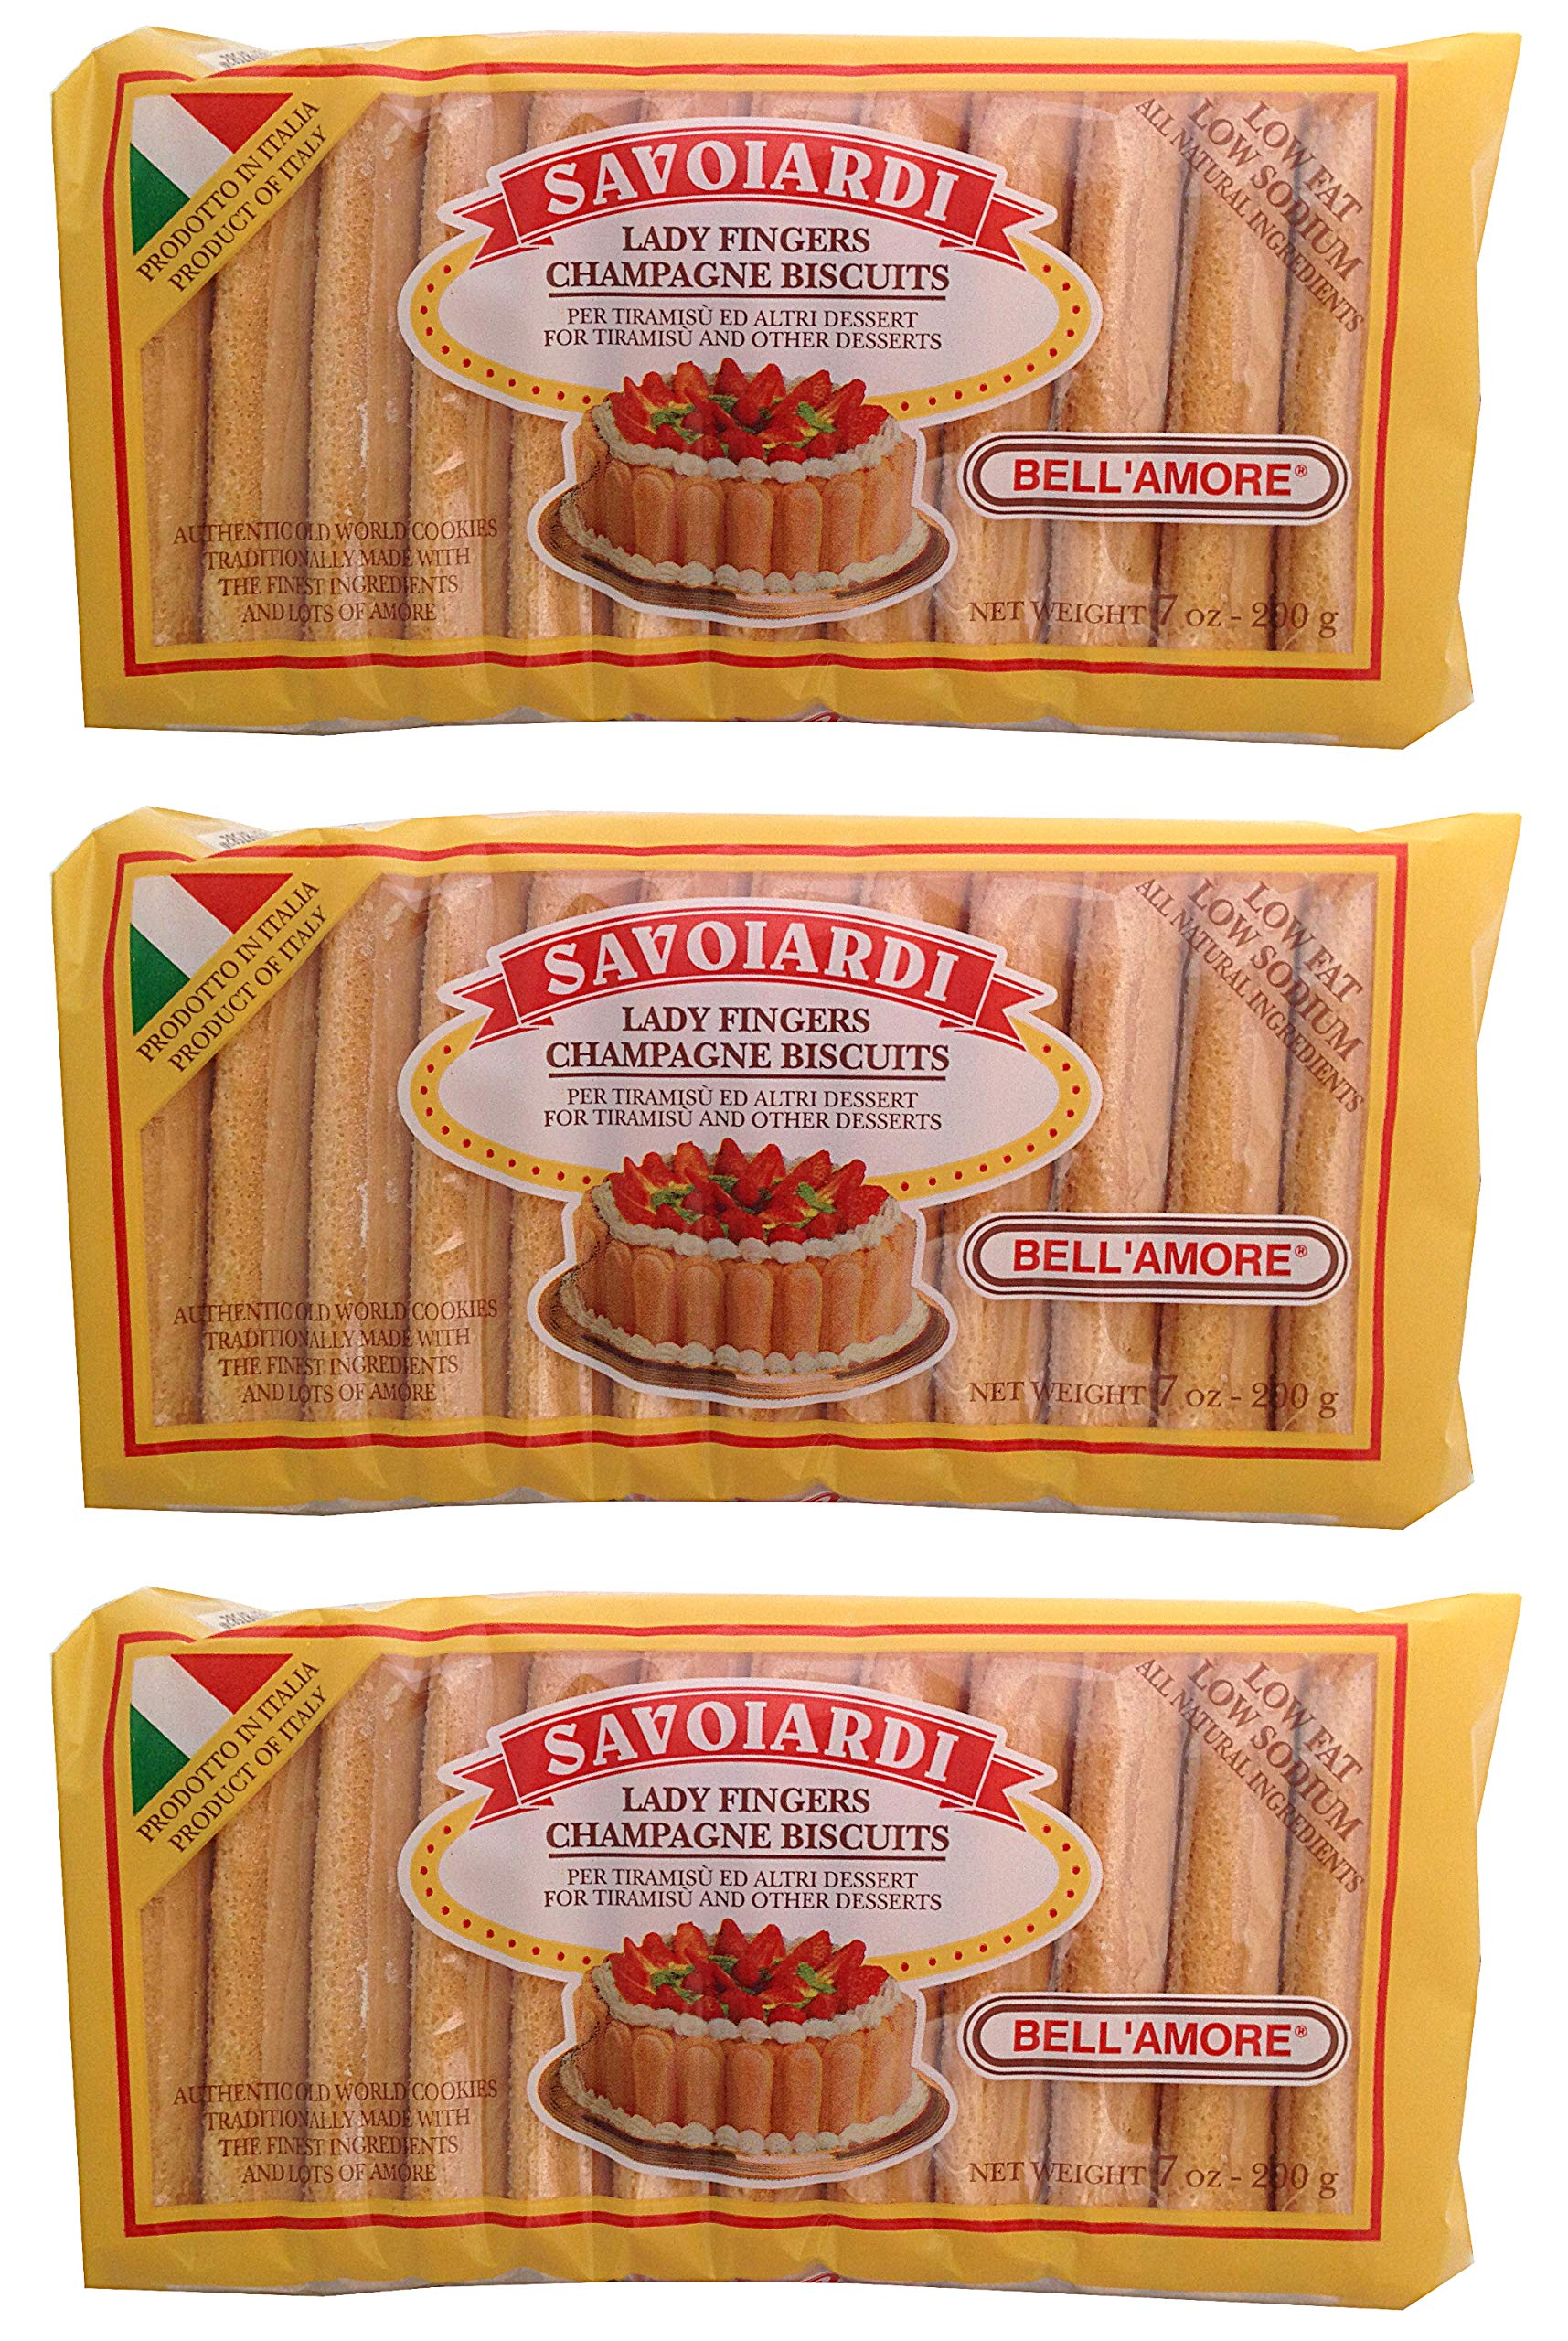 Savoiardi, Lady Fingers Champagne Biscuits, 7 oz (Pack of 3)